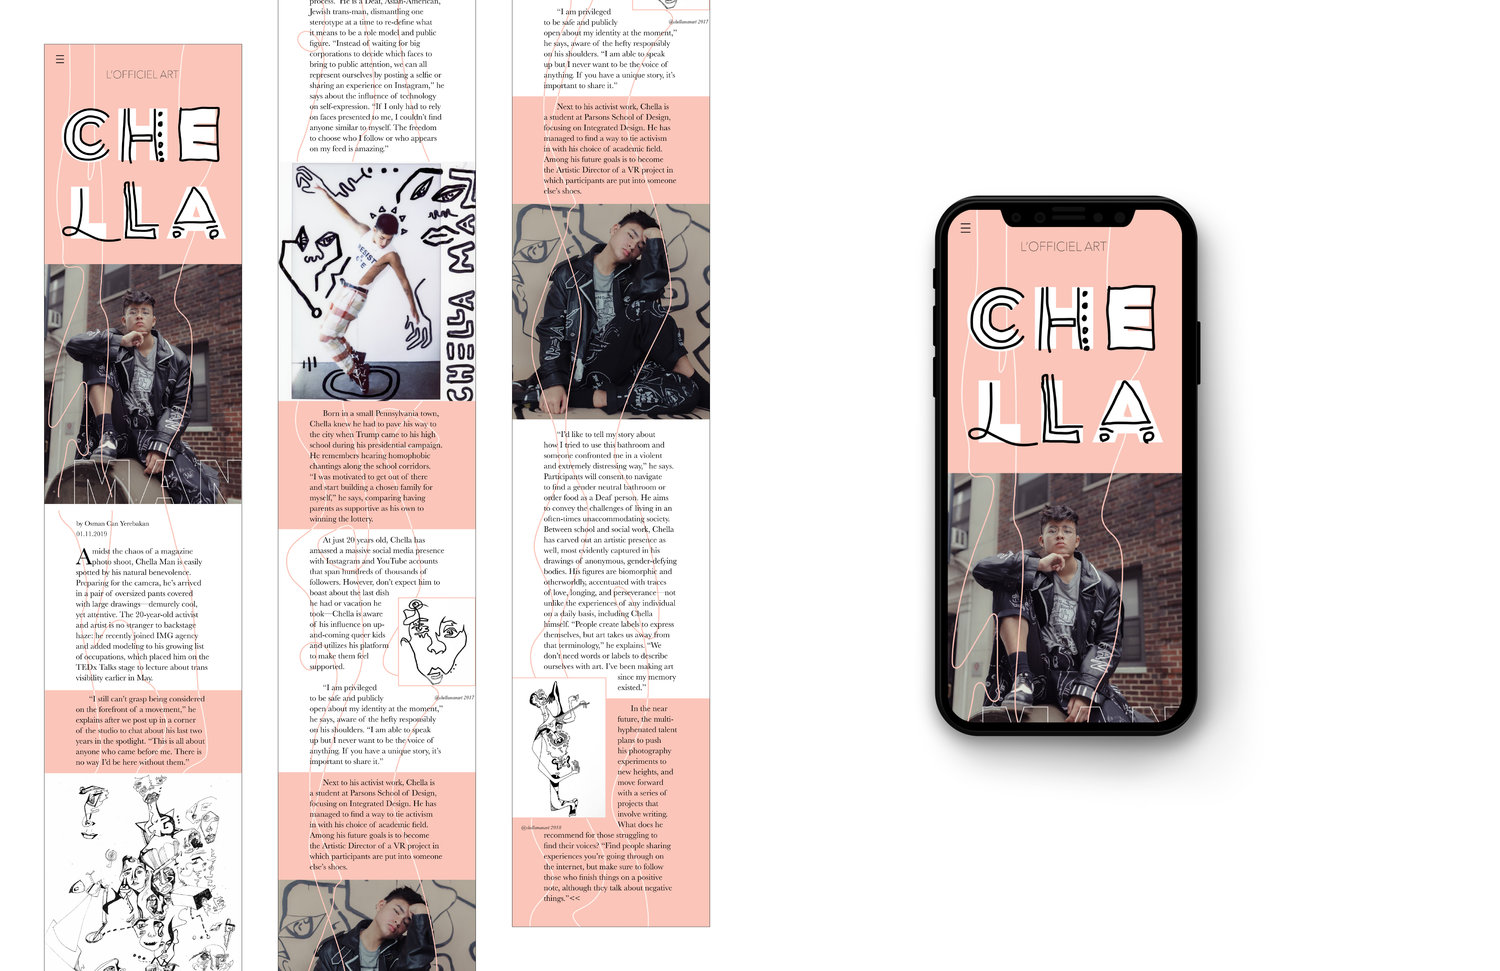 Chella Man Steffi Lai Design Illustration